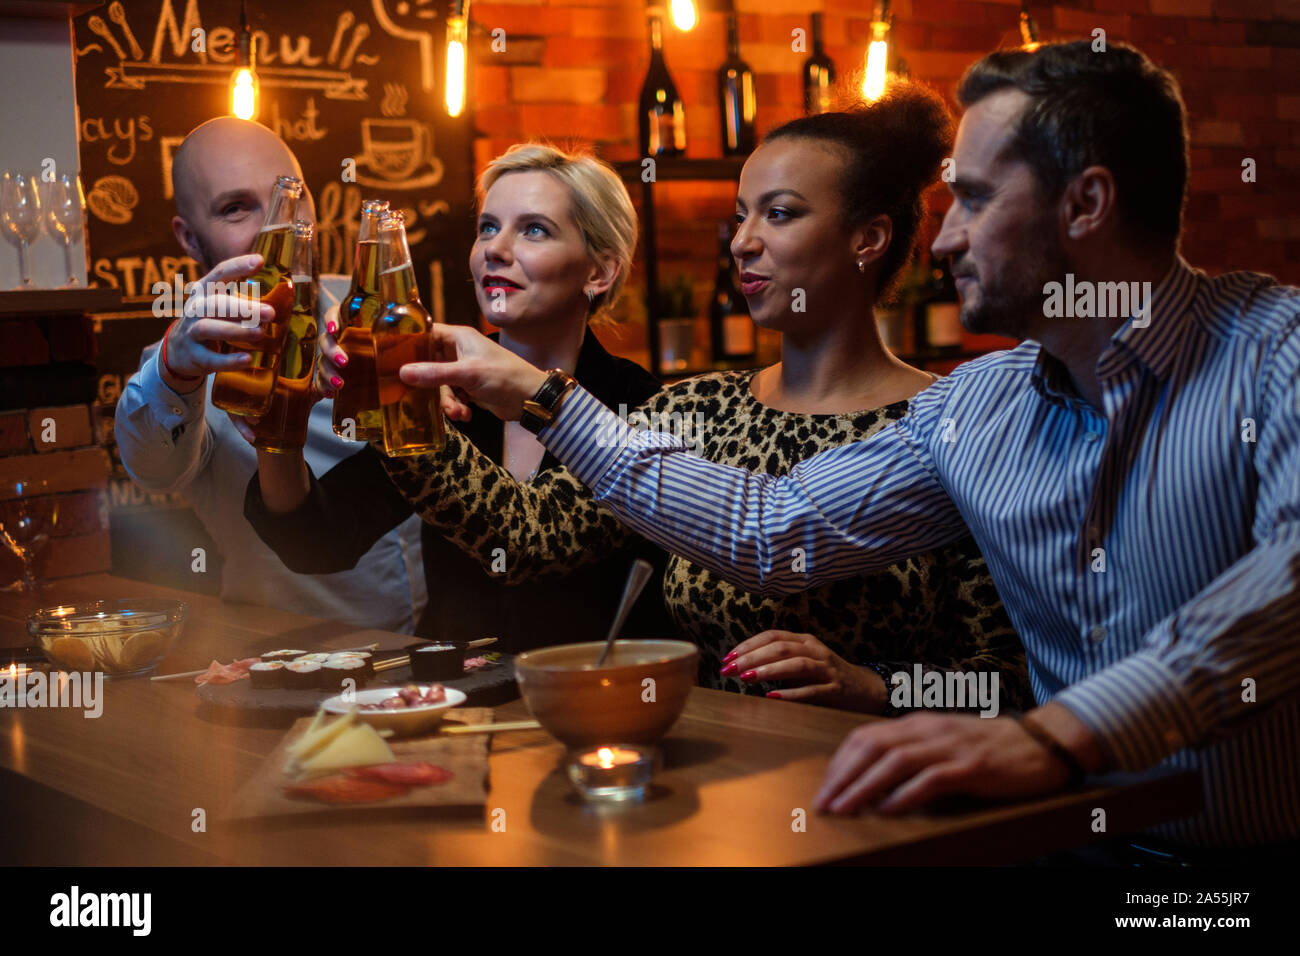 Group Of Friends Watching Tv In A Cafe Behind Bar Counter Stock Photo Alamy